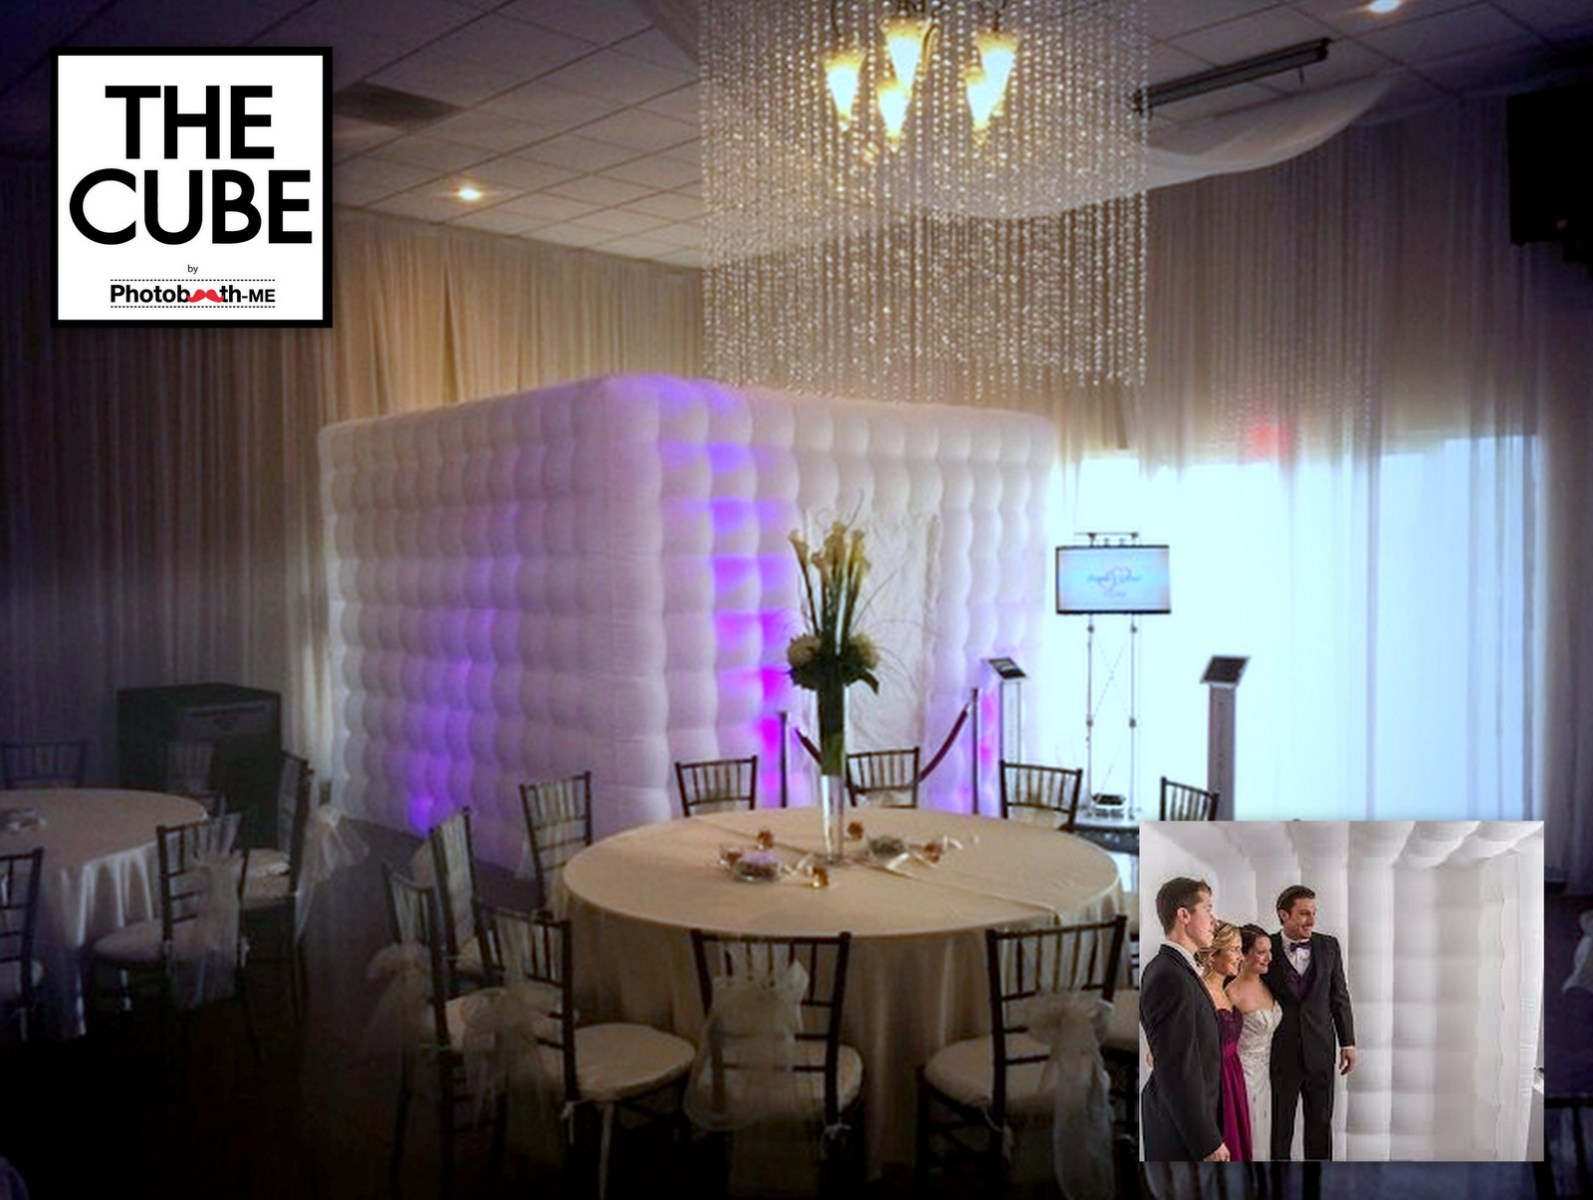 The CUBE. An Inflatable Glow-in-the-Dark Photobooth